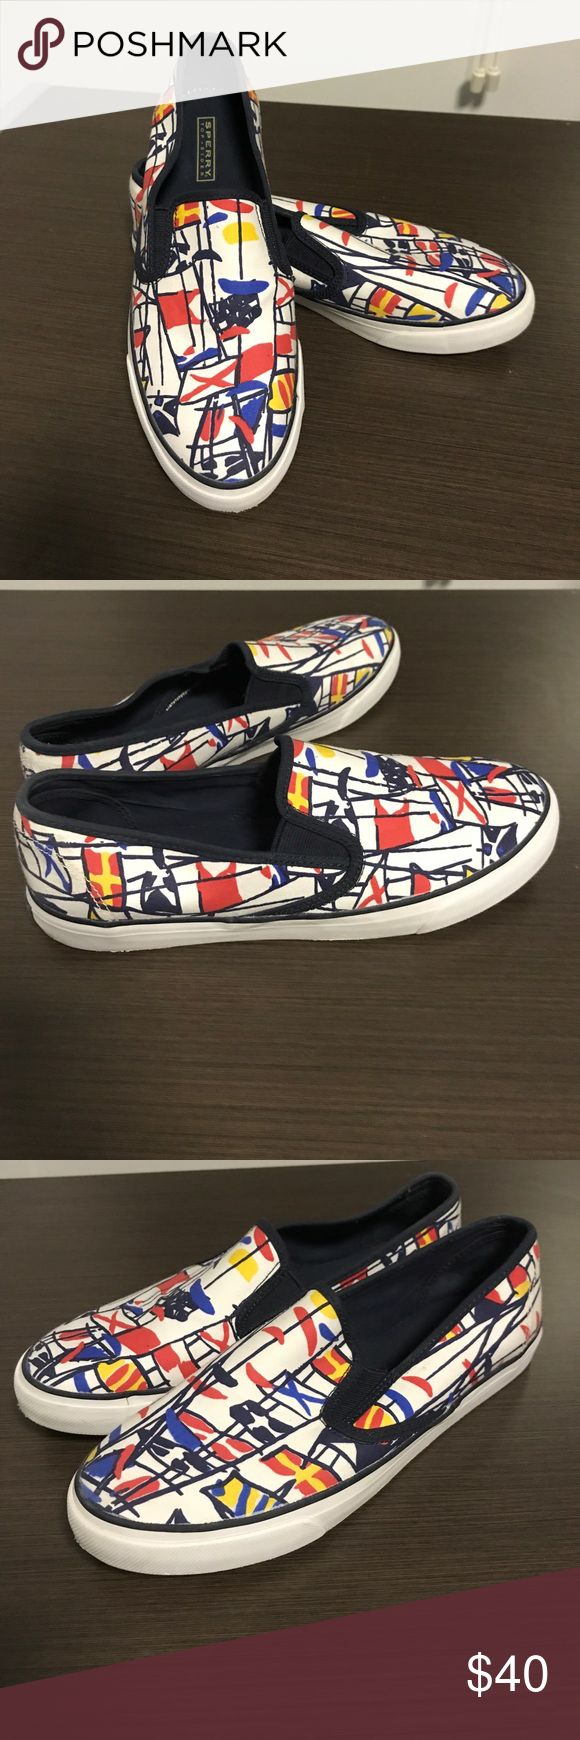 Sperry Nautical Women's Slip on Sneaker Great condition. Fun print. Only worn a few times. Size 8M. Perfect for summer boating! Sperry Top-Sider Shoes Sneakers